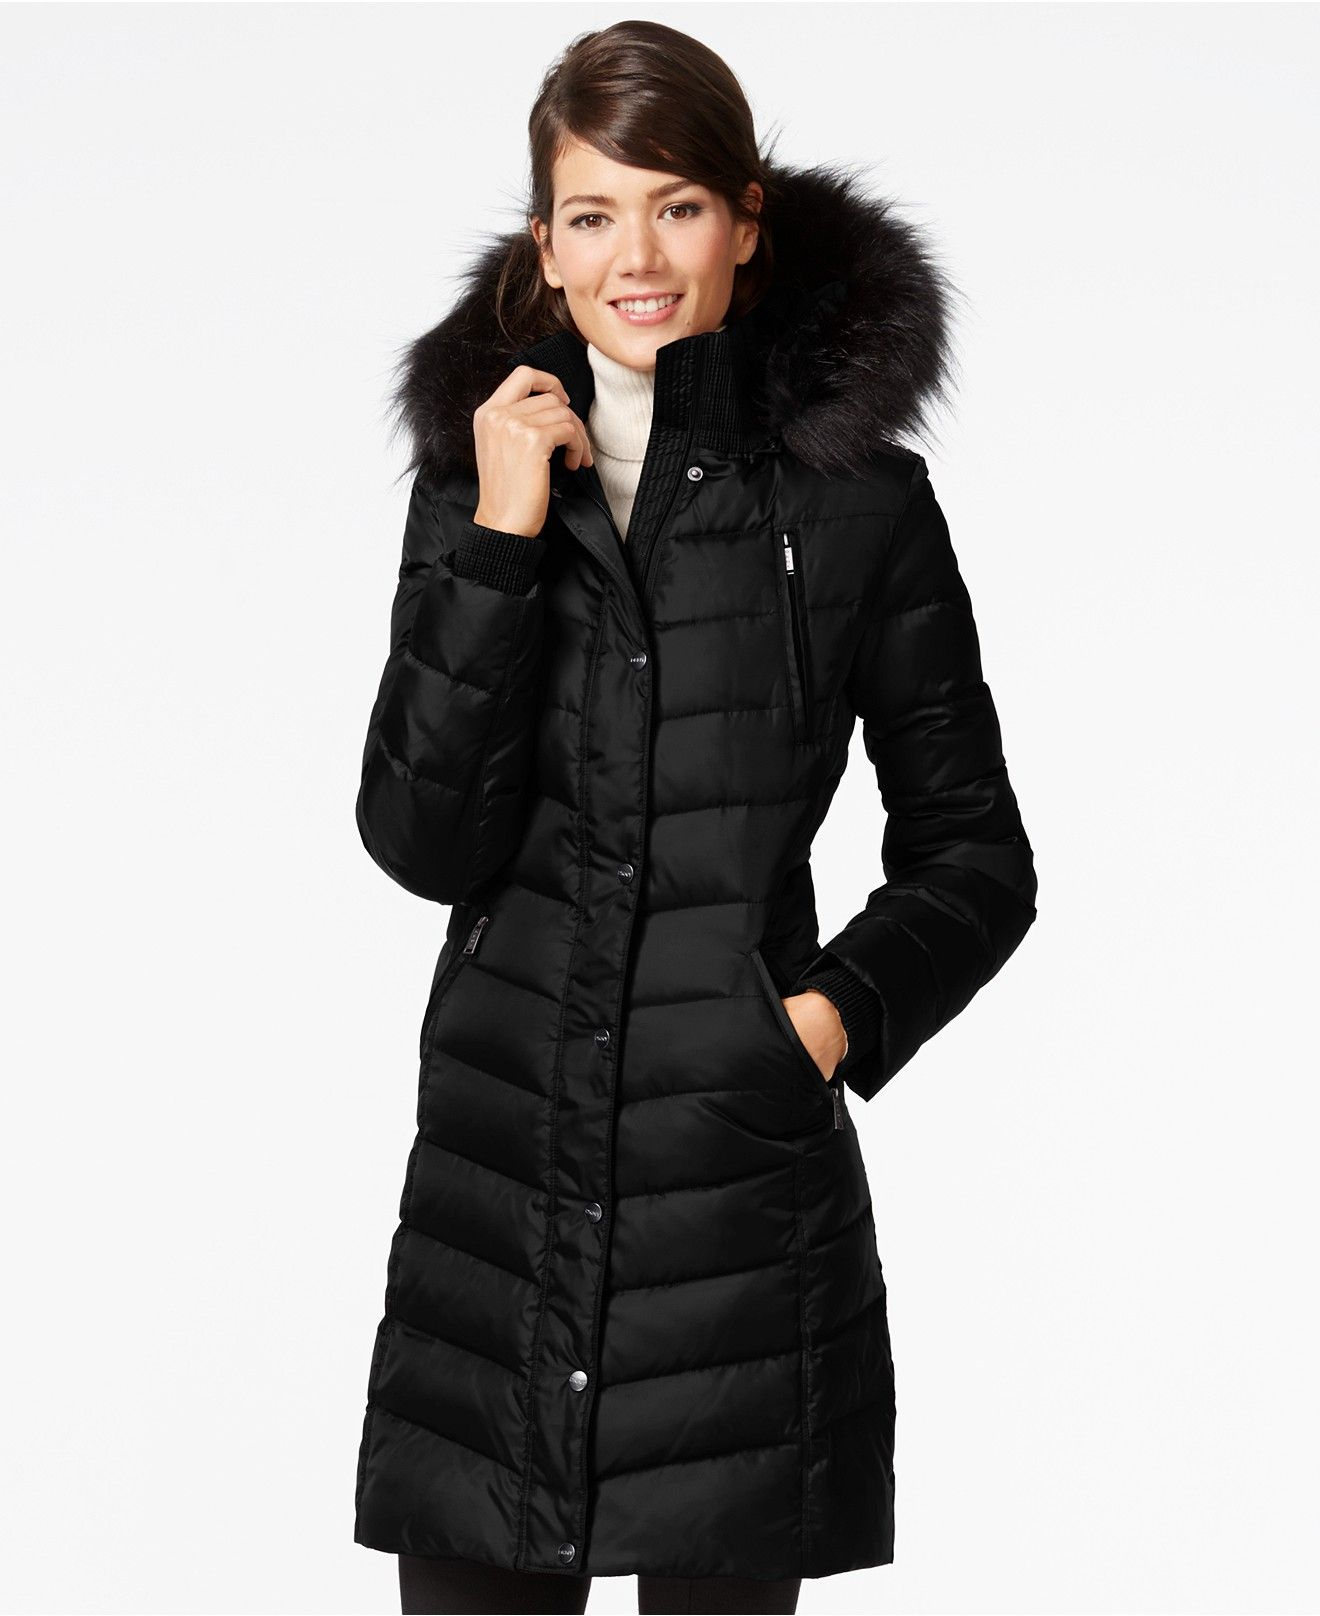 DKNY Faux Fur Trim Hooded Down Puffer Coat Coats Women